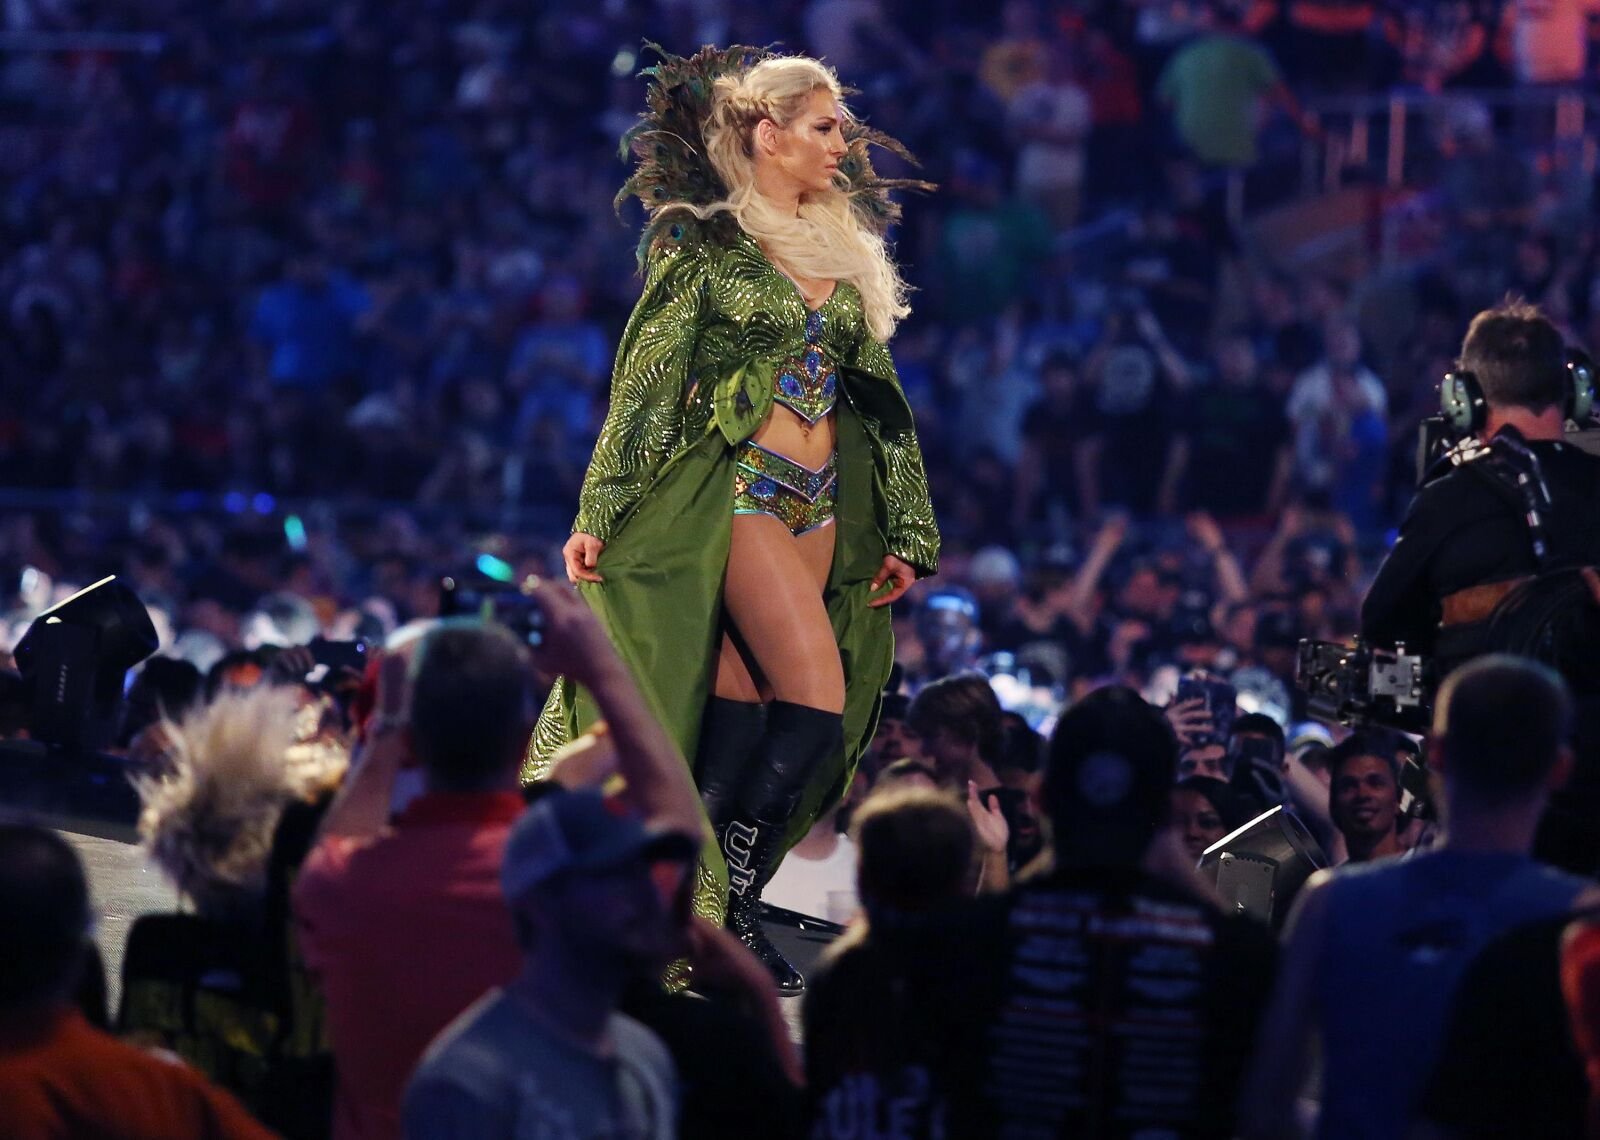 WWE: Charlotte Flair getting another championship opportunity is wrong